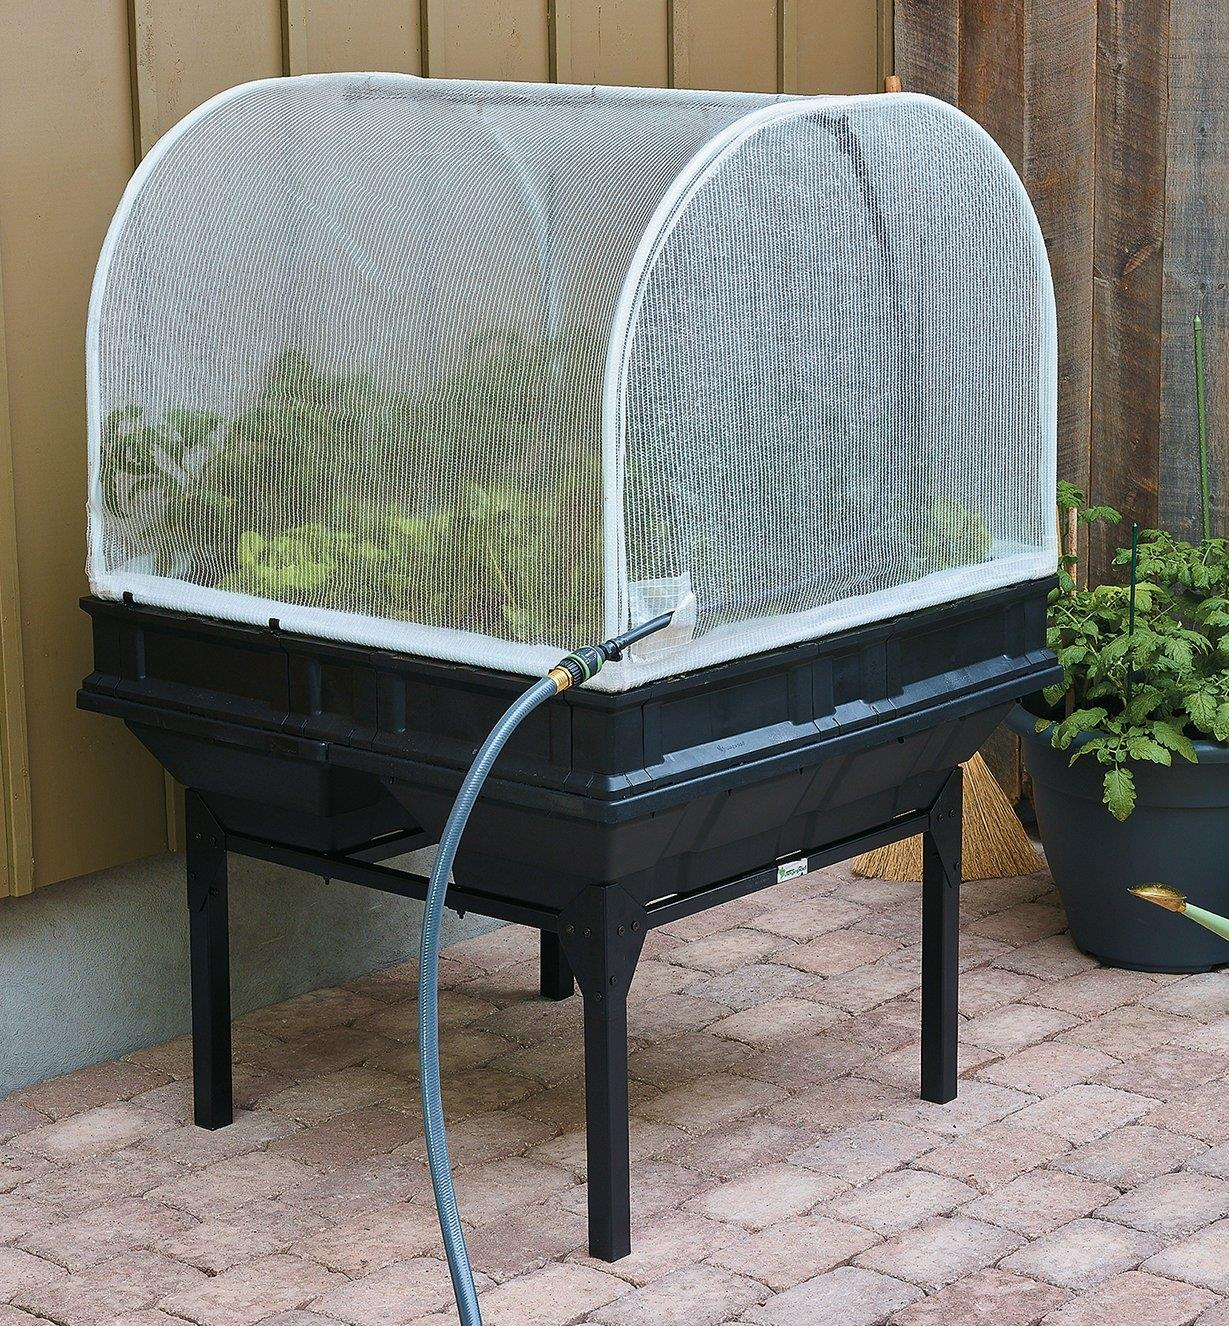 Vegepod Container Garden with a stand growing vegetables on a patio